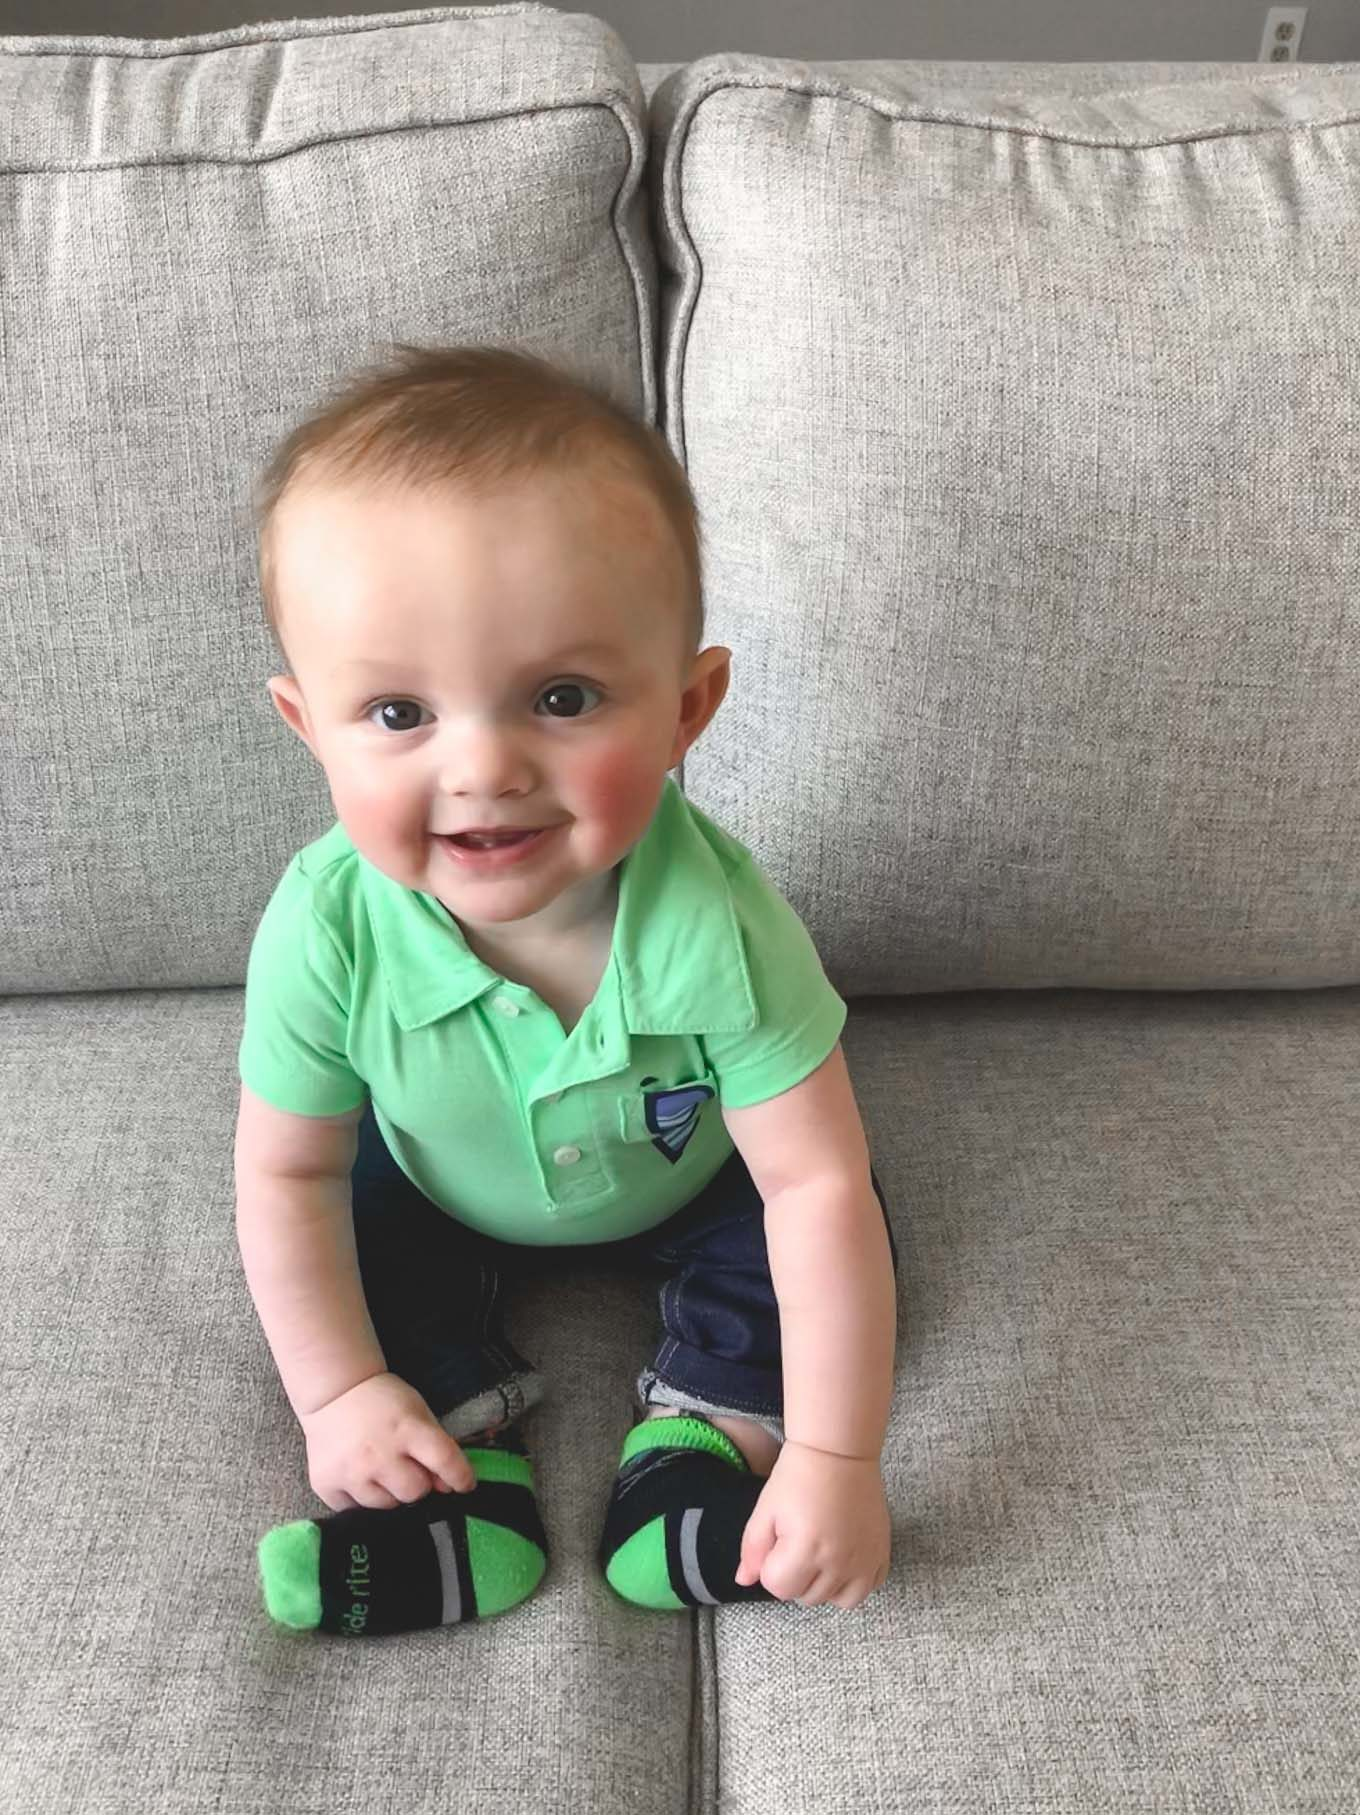 james on st. patrick's day 2019